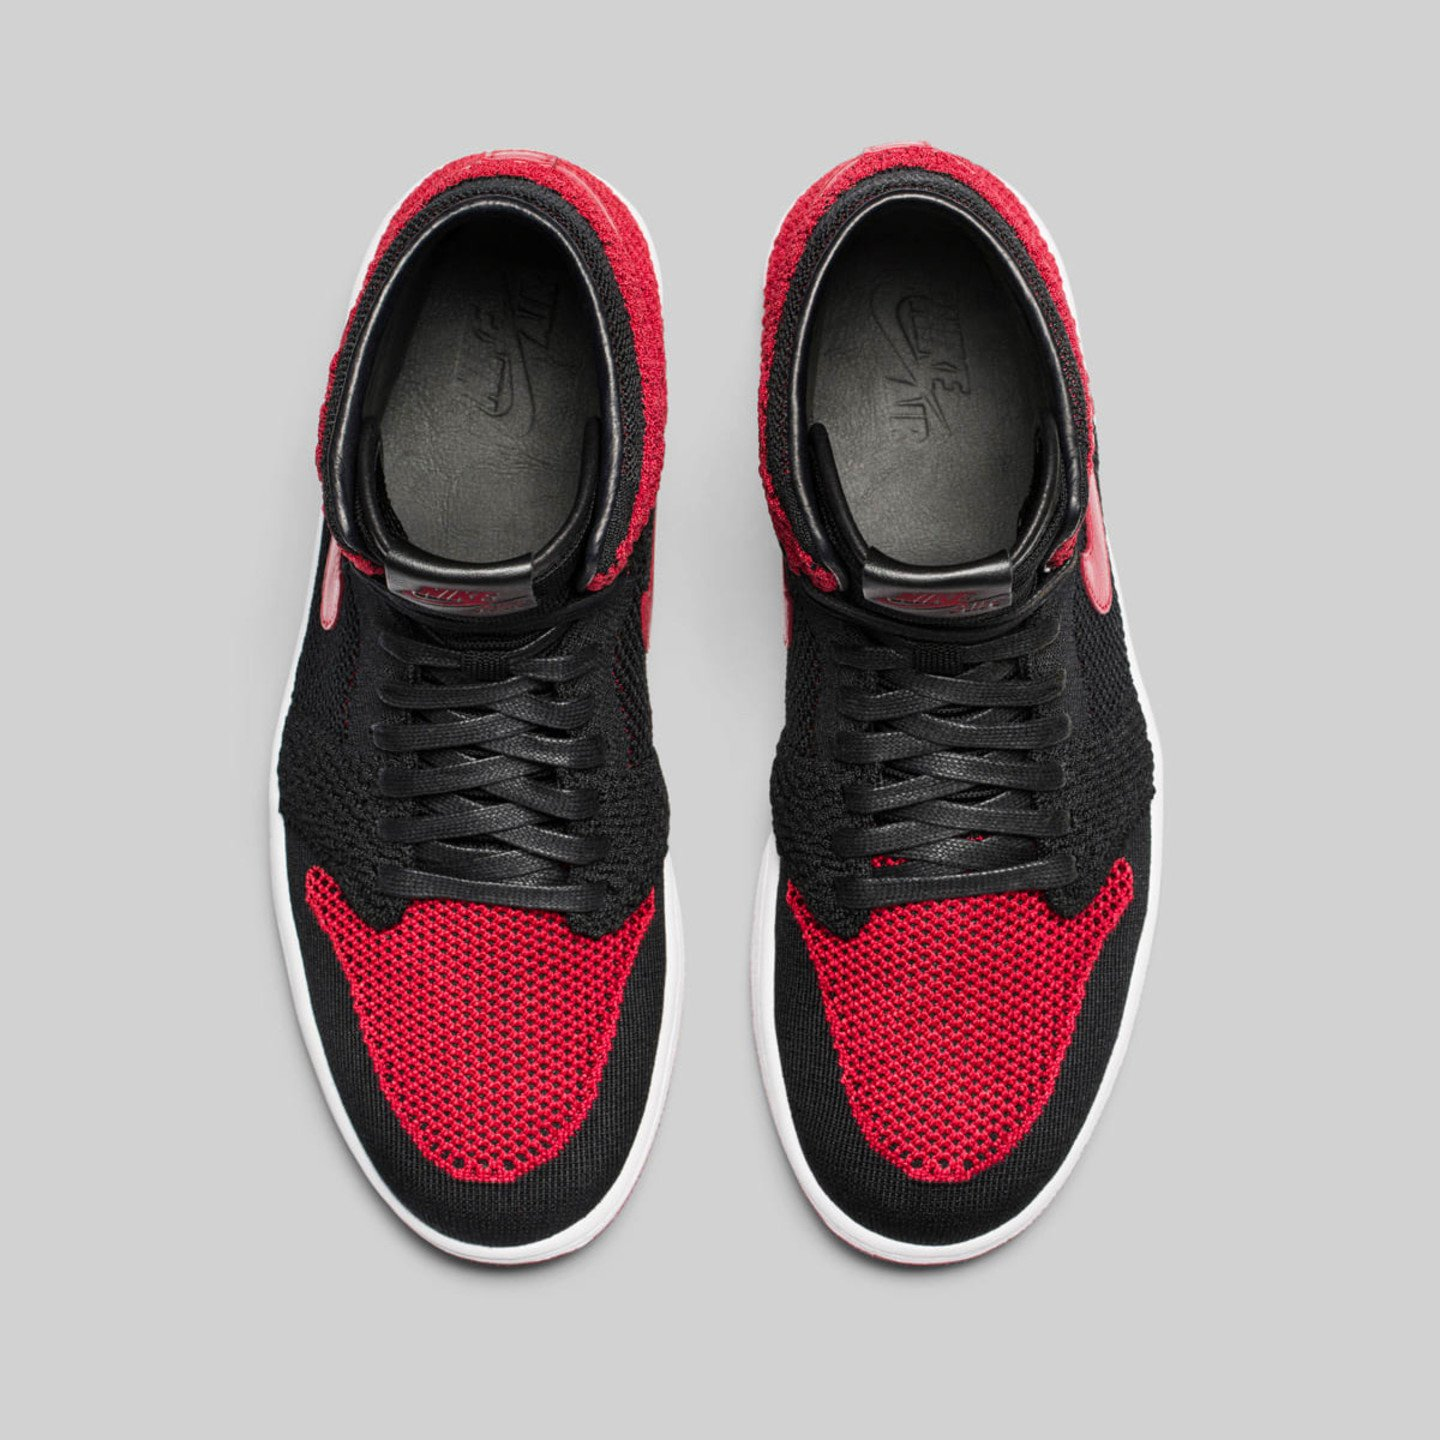 Jordan Air Jordan 1 Flyknit Banned Black / Varsity Red / White 919704-001